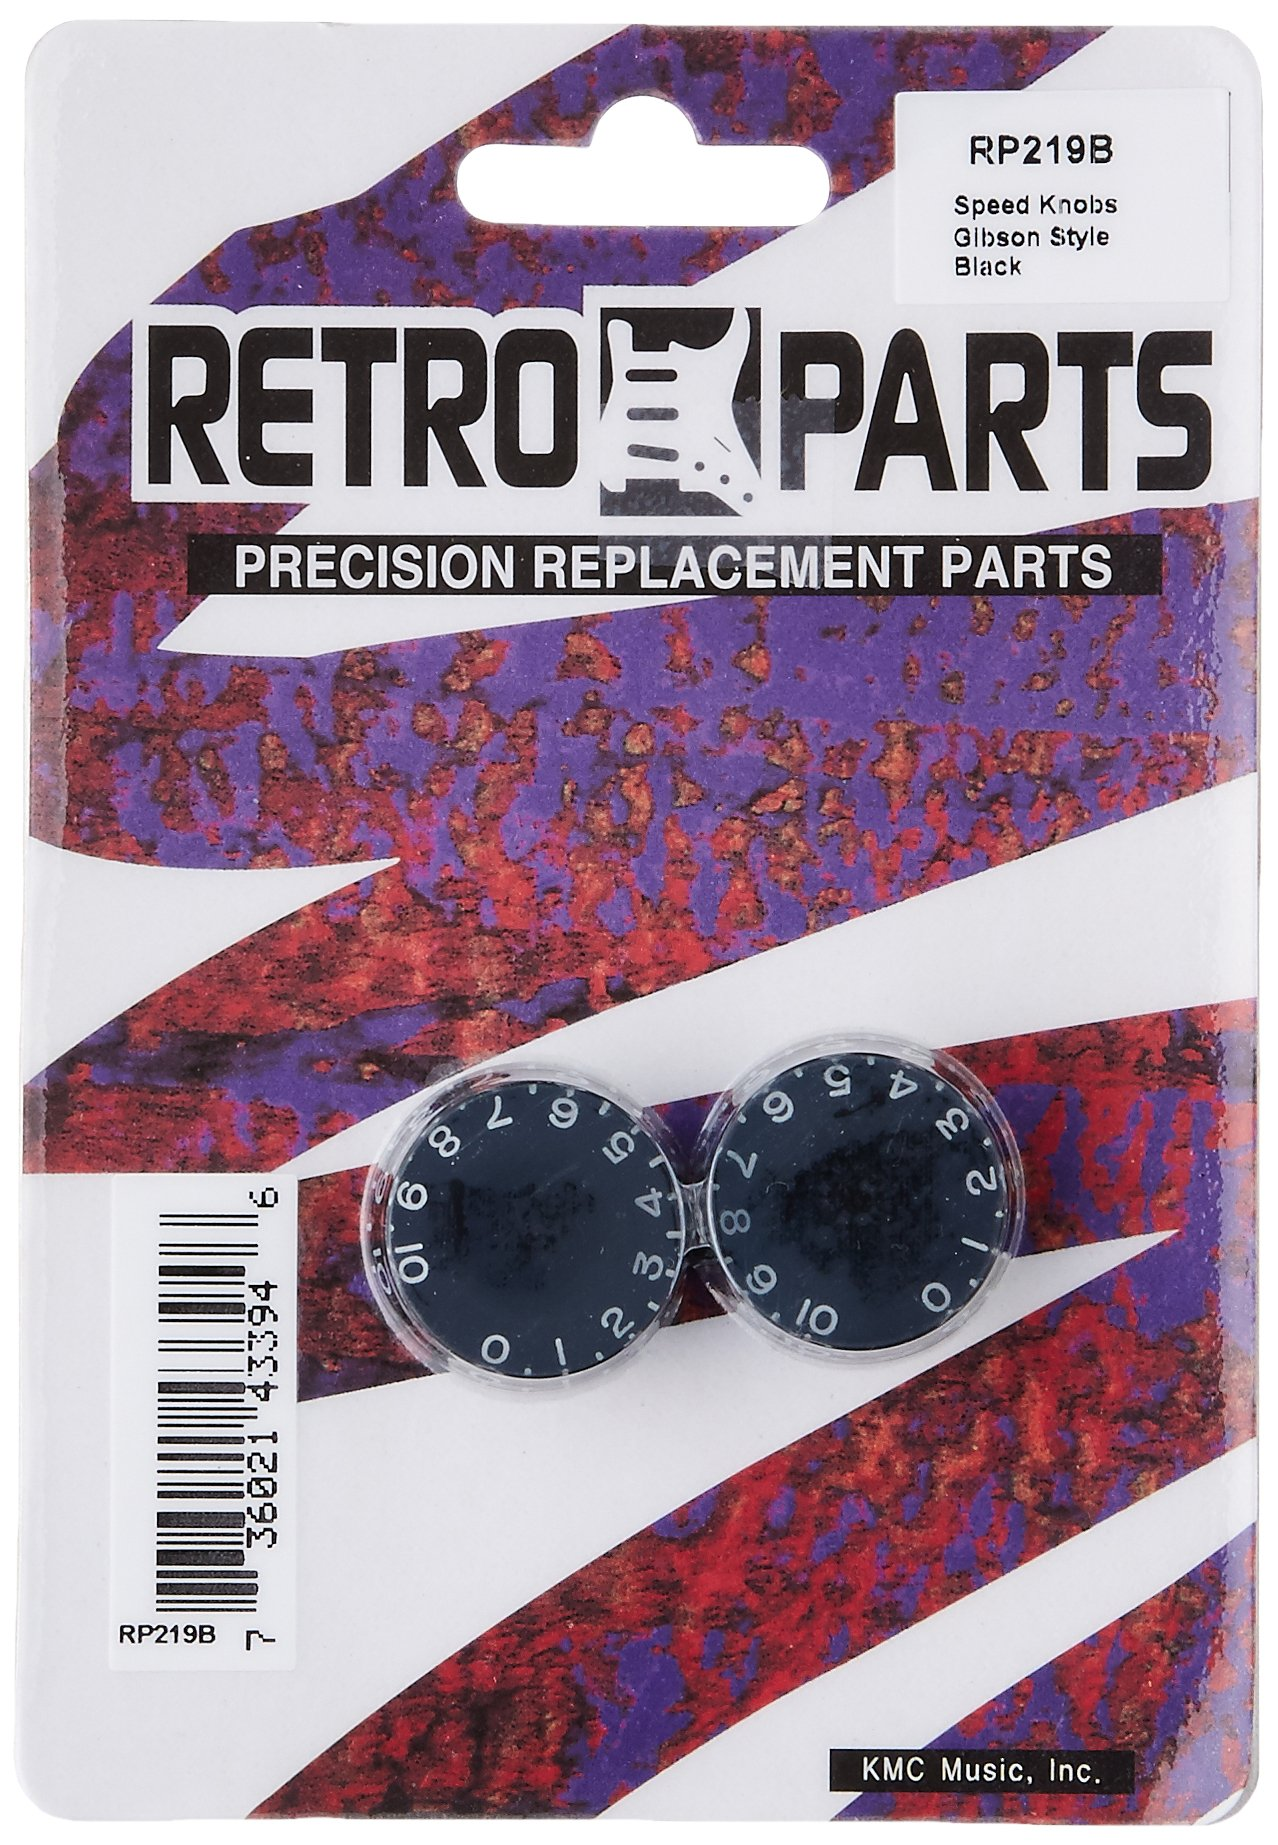 Retro Parts RP219B Gibson Style Replacement Speed Knobs - Black